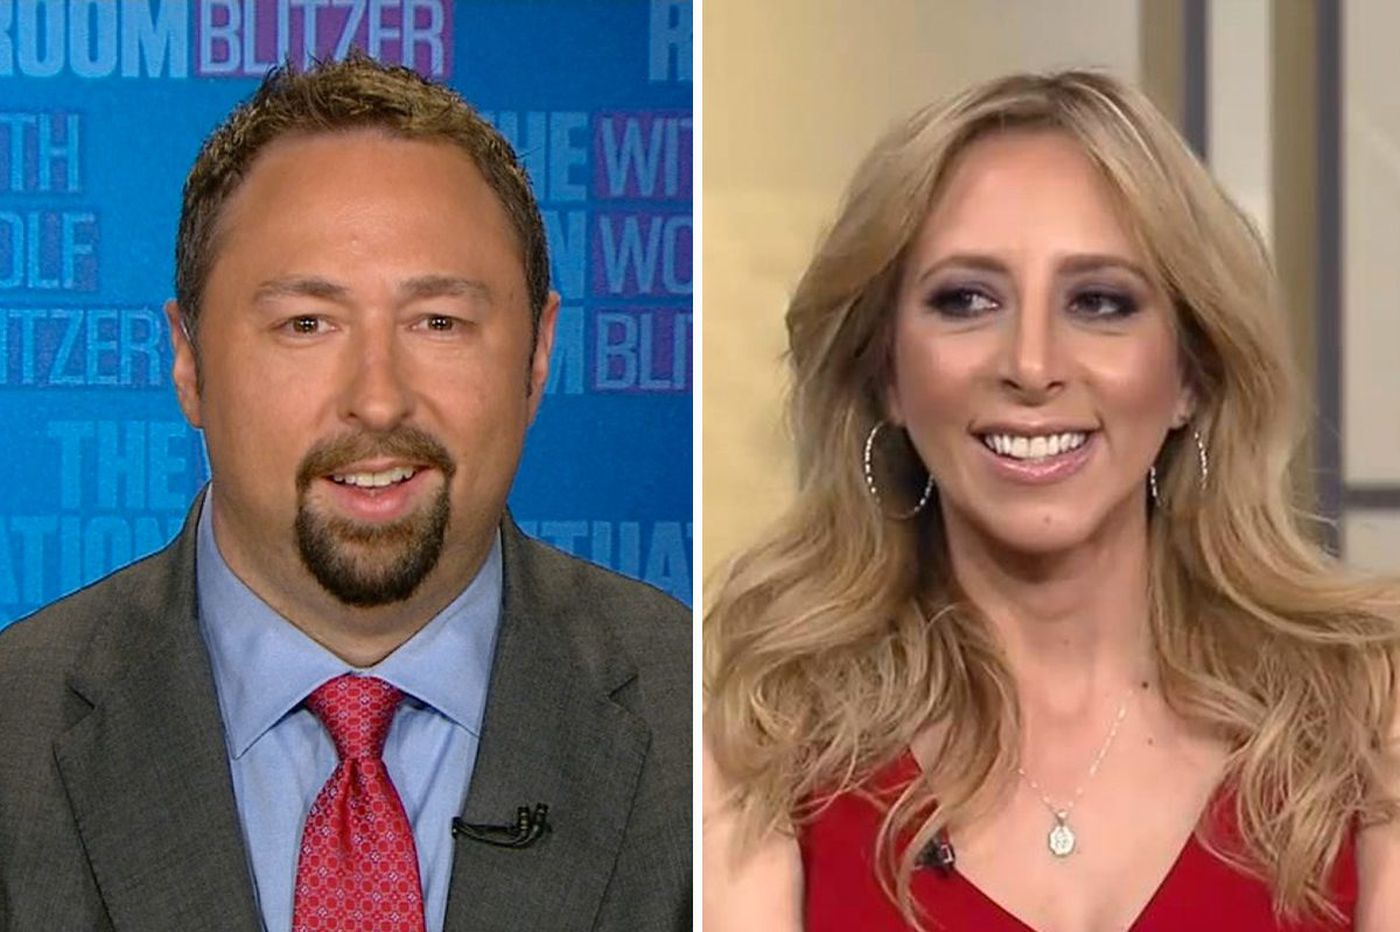 Former Trump adviser says she was fired for getting pregnant